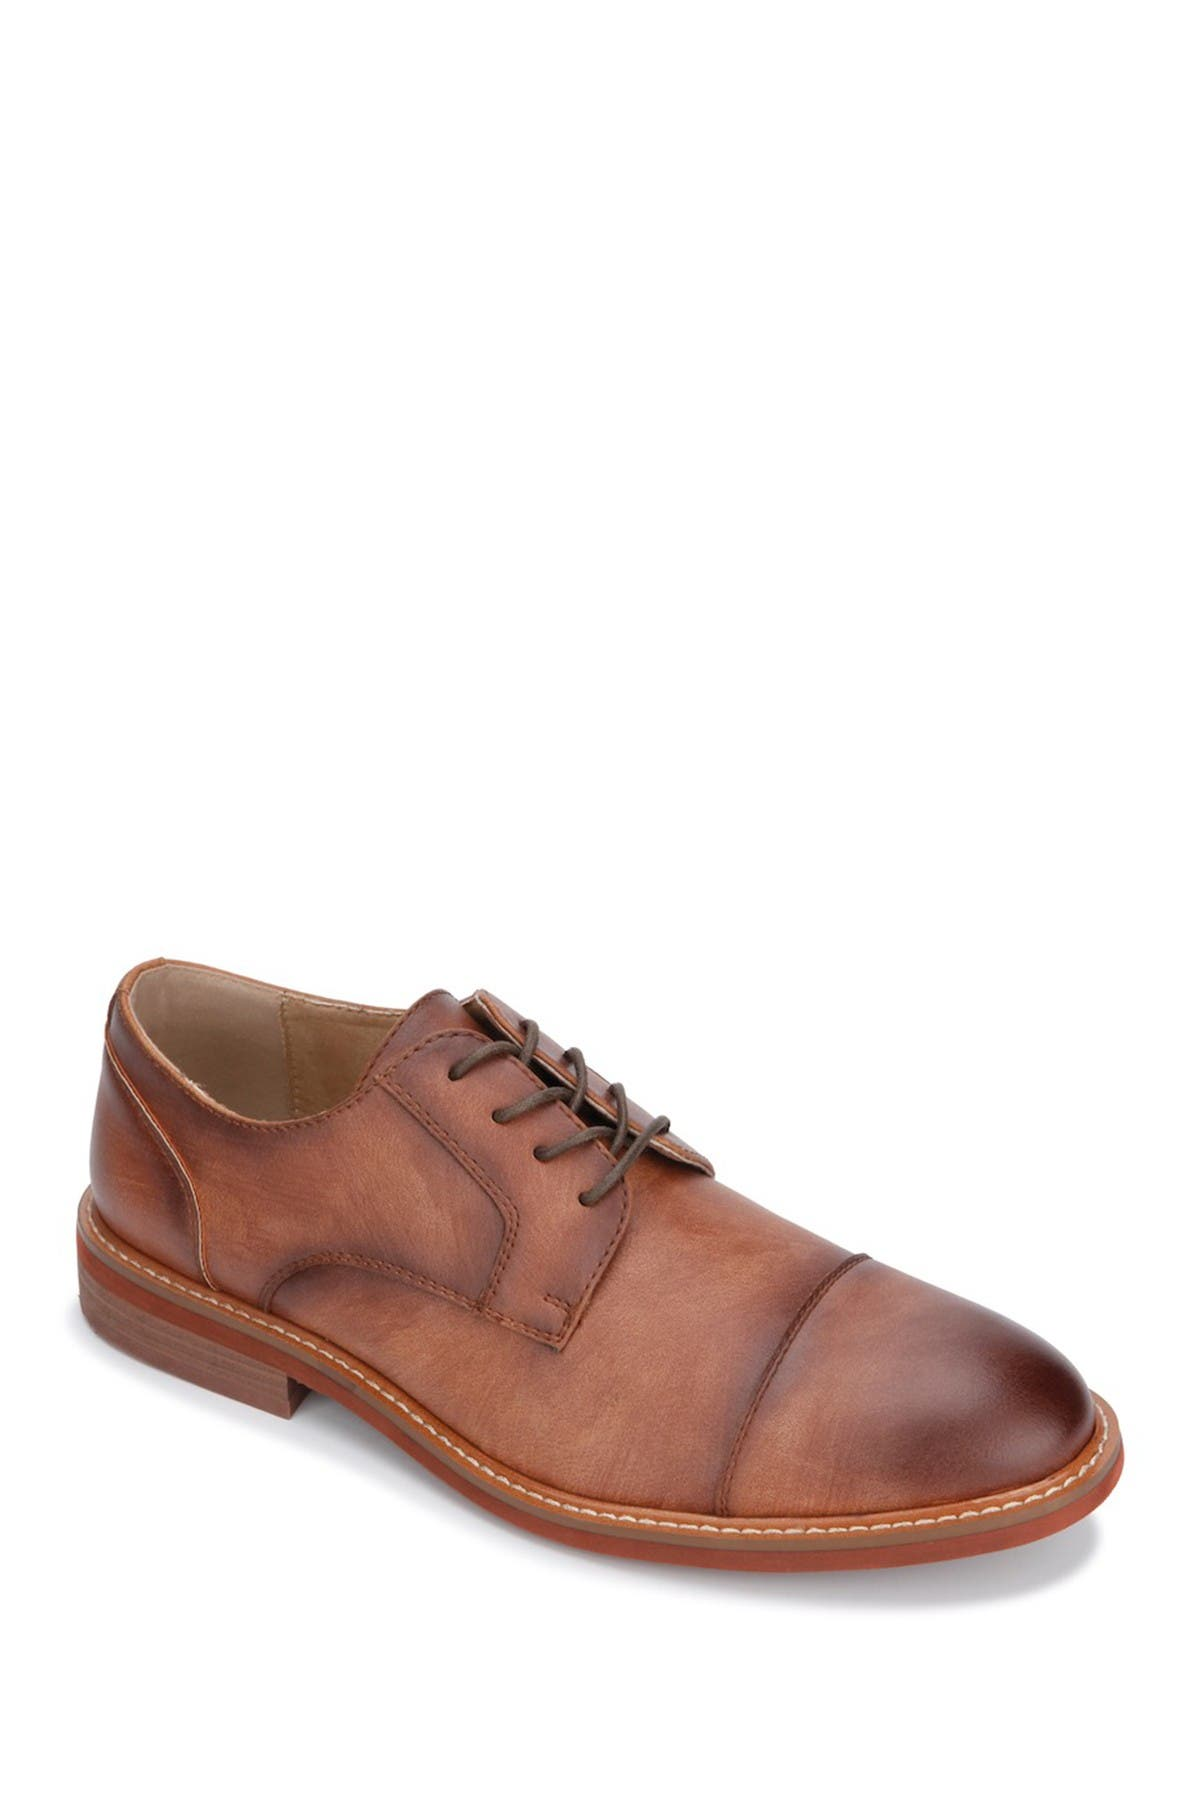 Image of Kenneth Cole Reaction Jimmie Cap Toe Derby